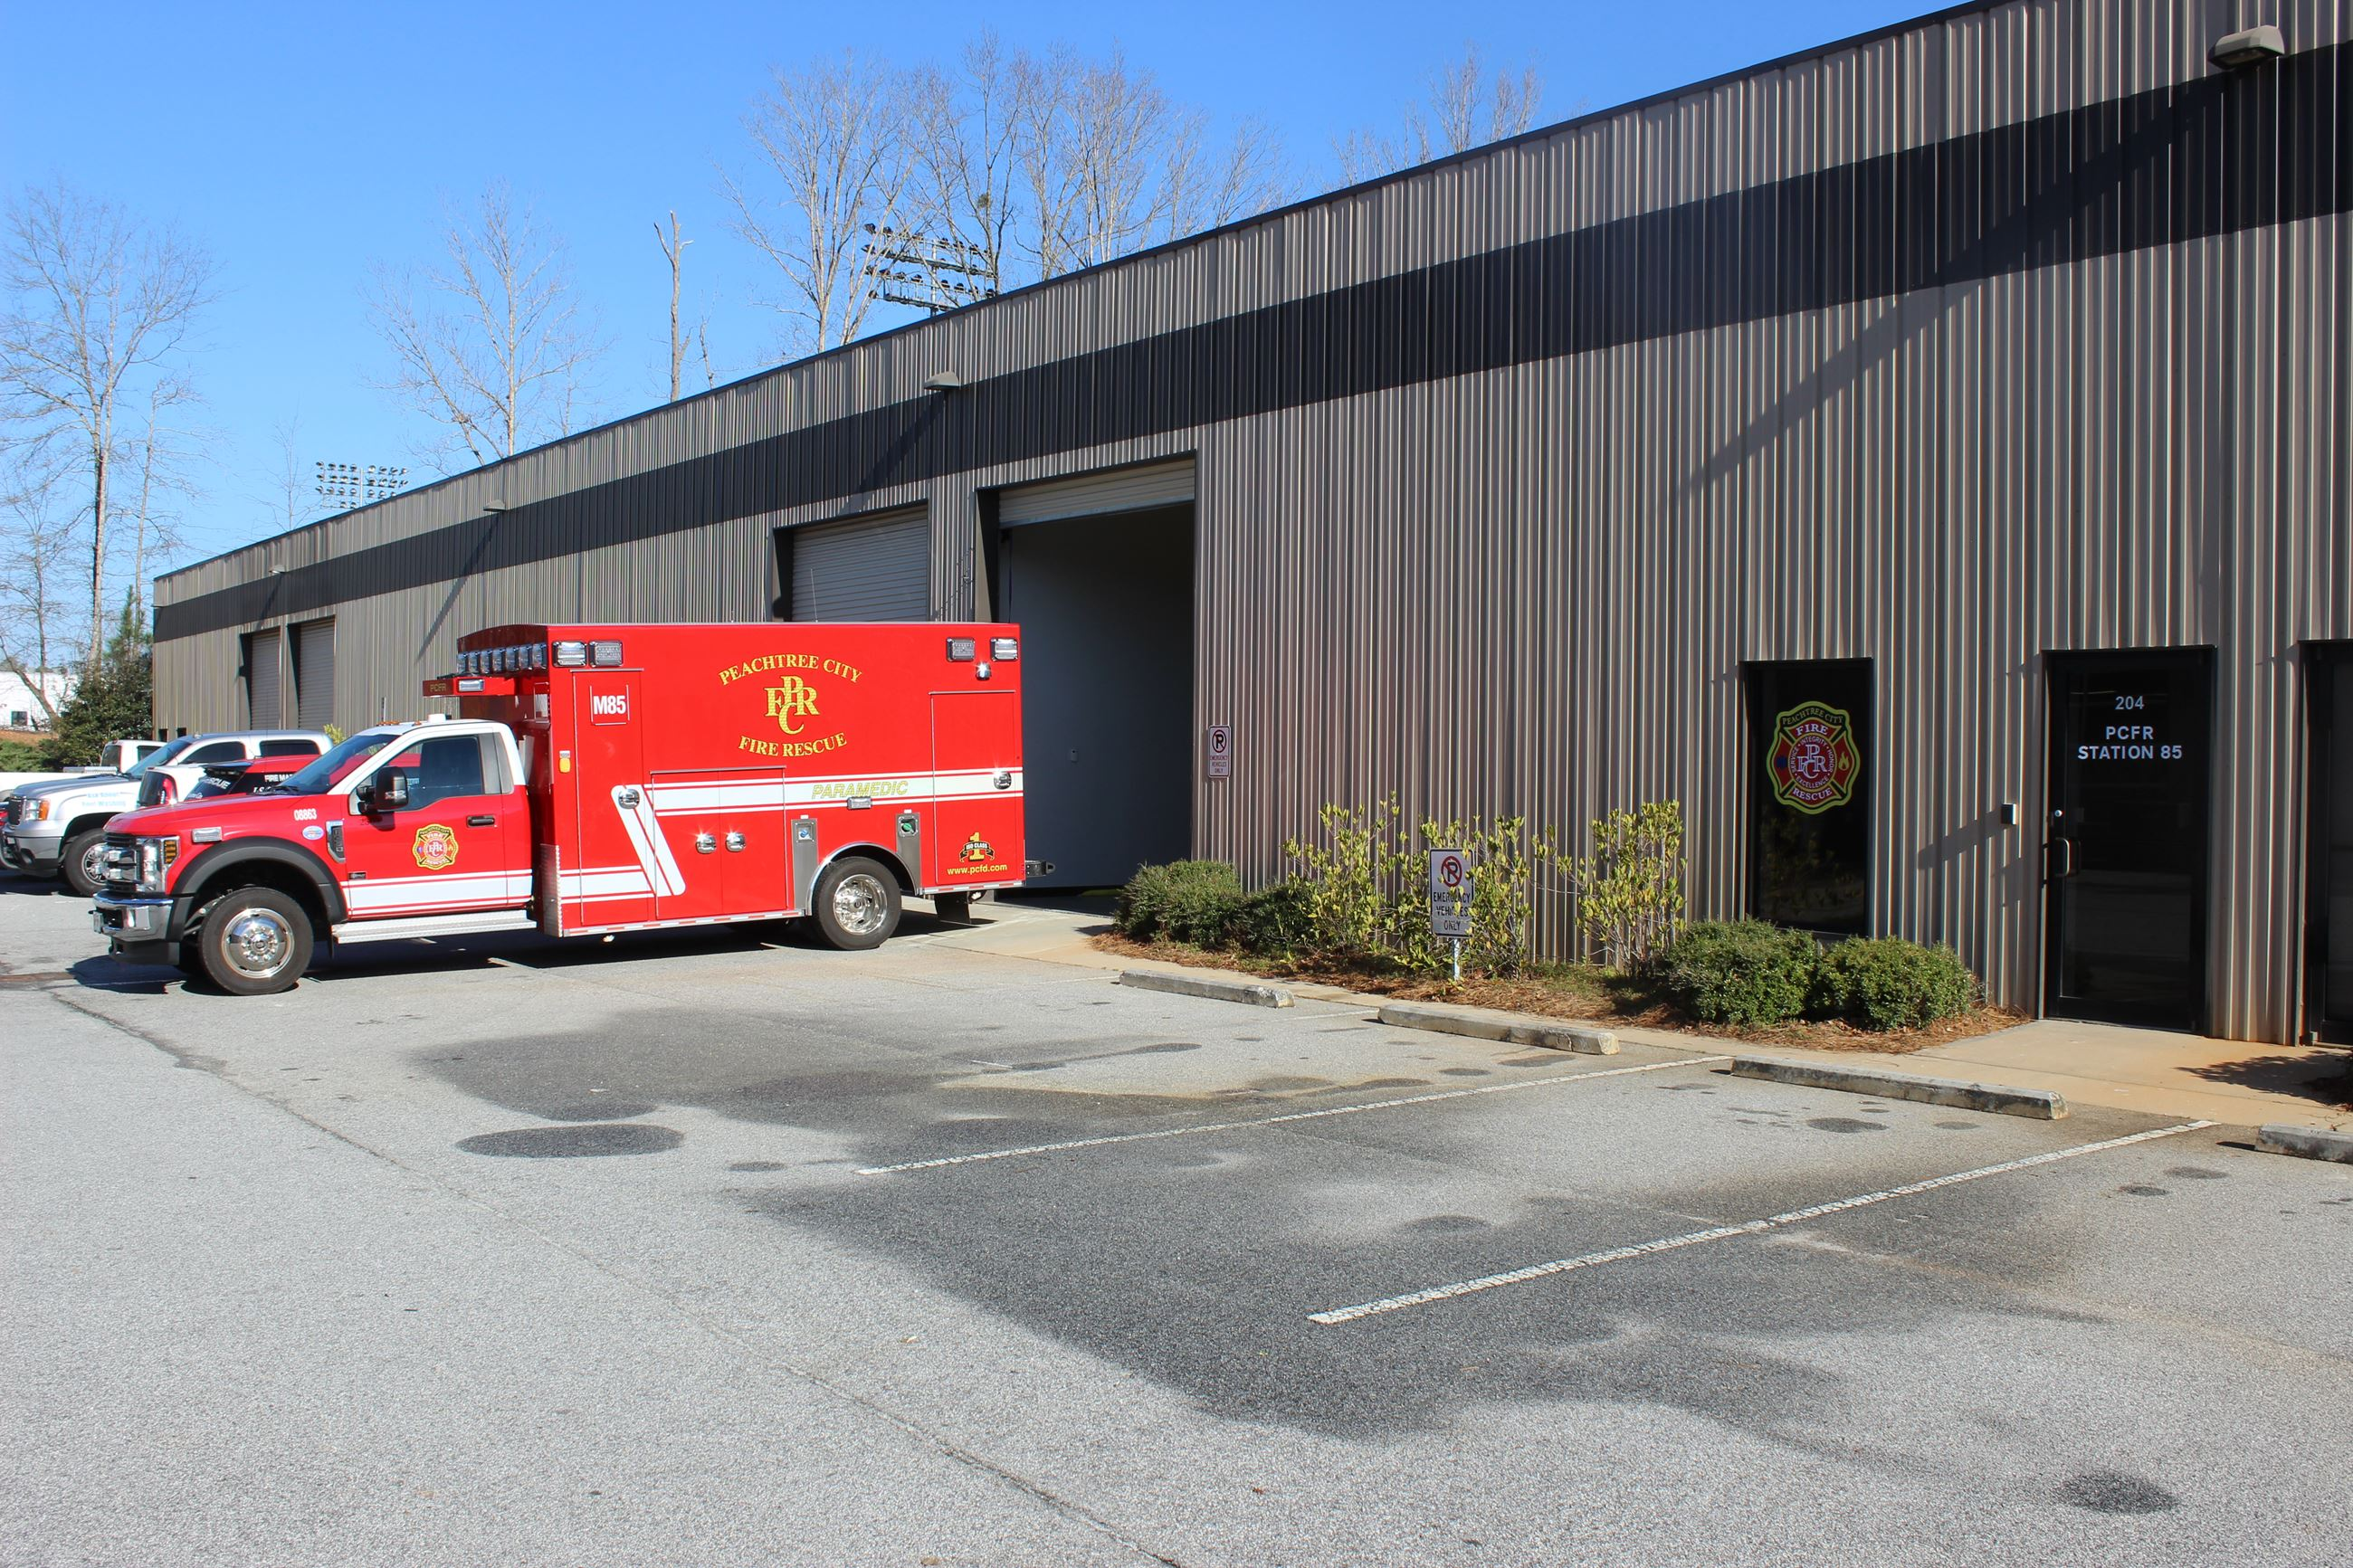 Peachtree City Golf Carts >> The City currently has 5 fire stations | Peachtree City, GA - Official Website